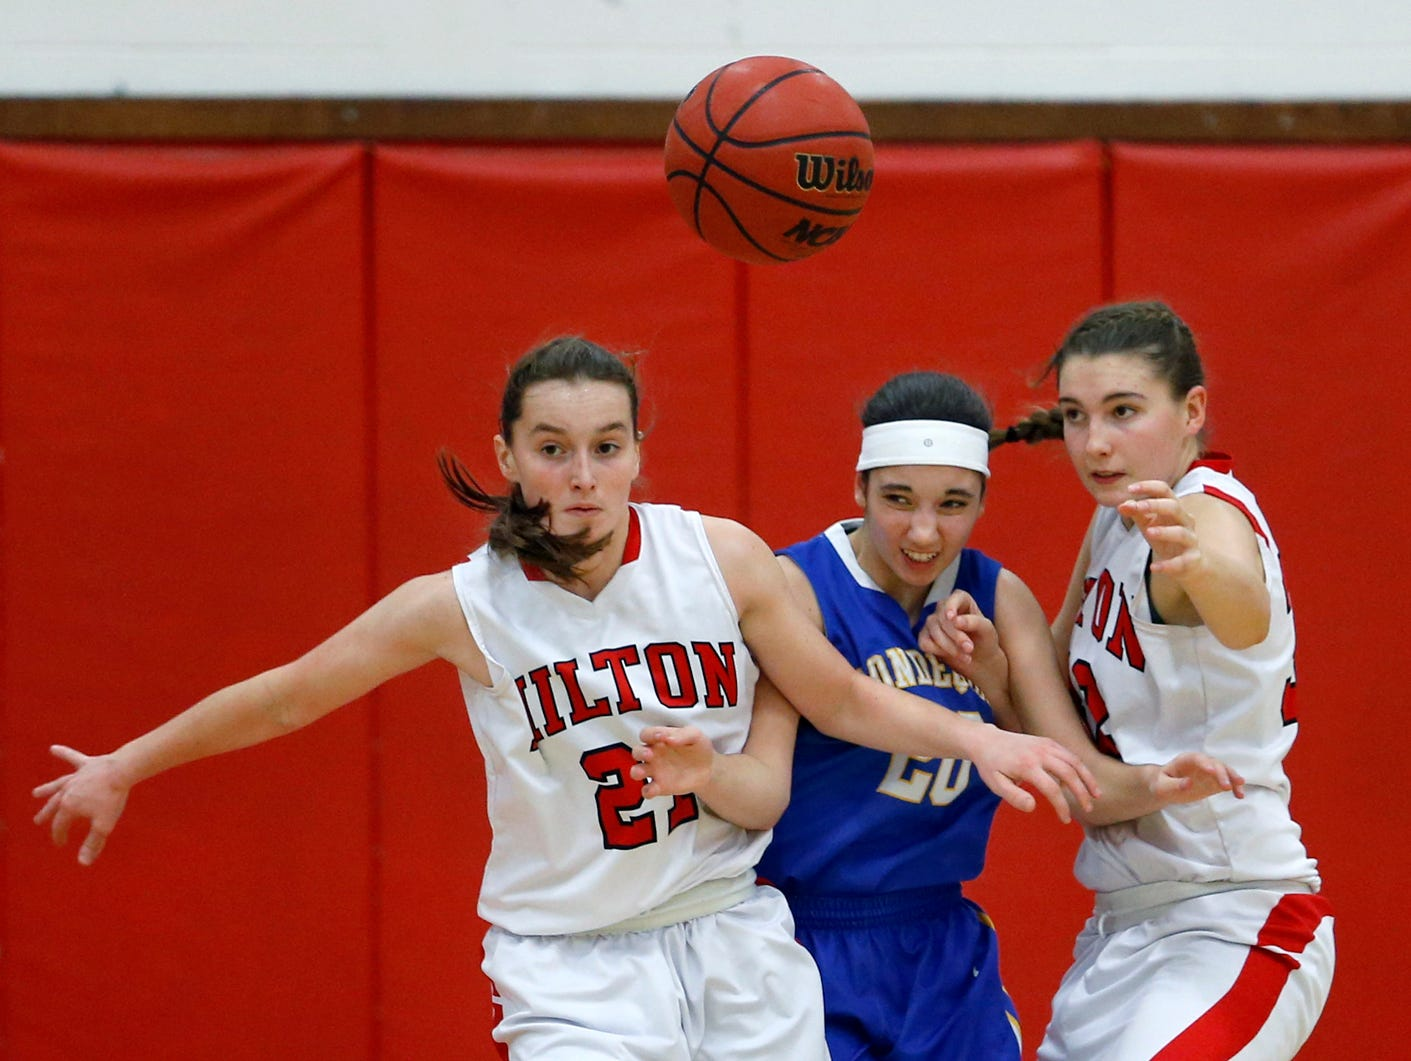 Hilton's Alyssa Juergens, Irondequoit's Megan Dano and Hilton's Meaghan McGwin chase a loose ball in the first quarter at Hilton High School.